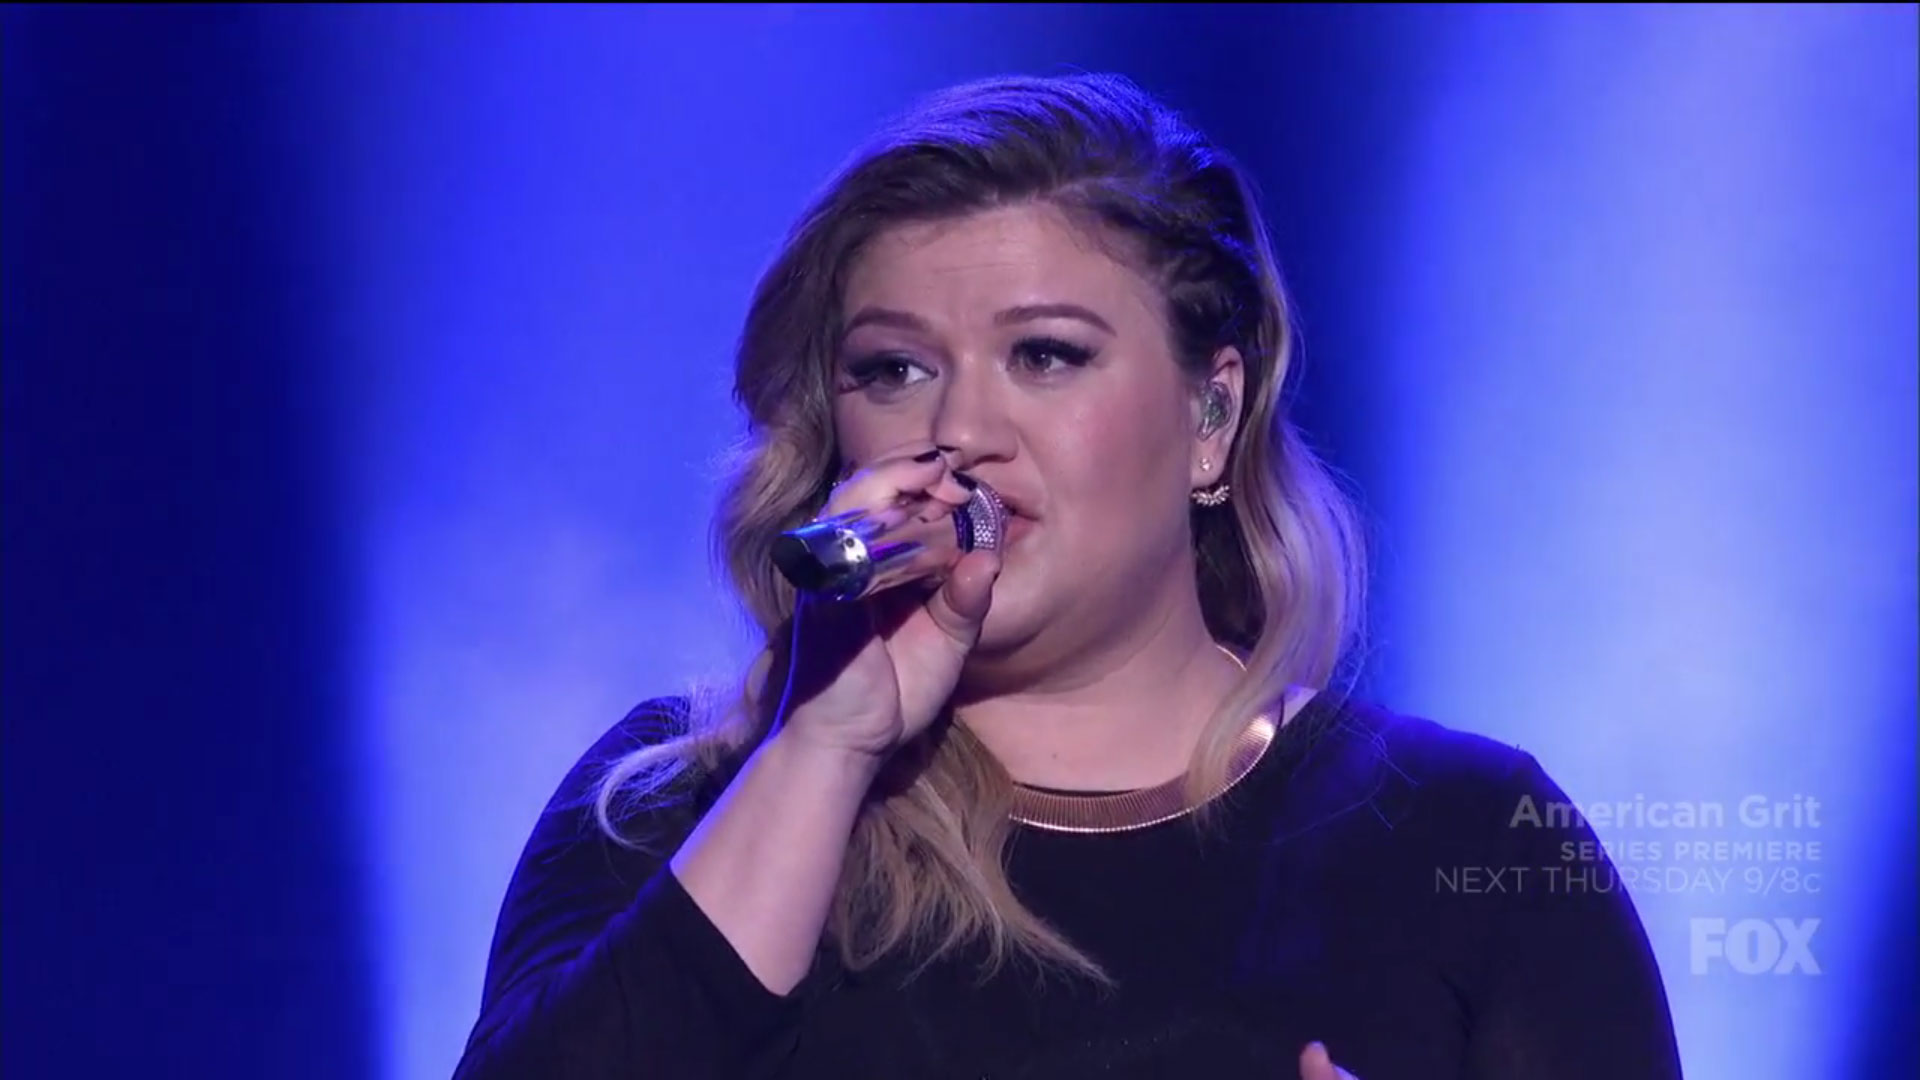 WATCH: Queen Kelly Clarkson sang an amazing medley of 20 hits in just five minutes on American Idol